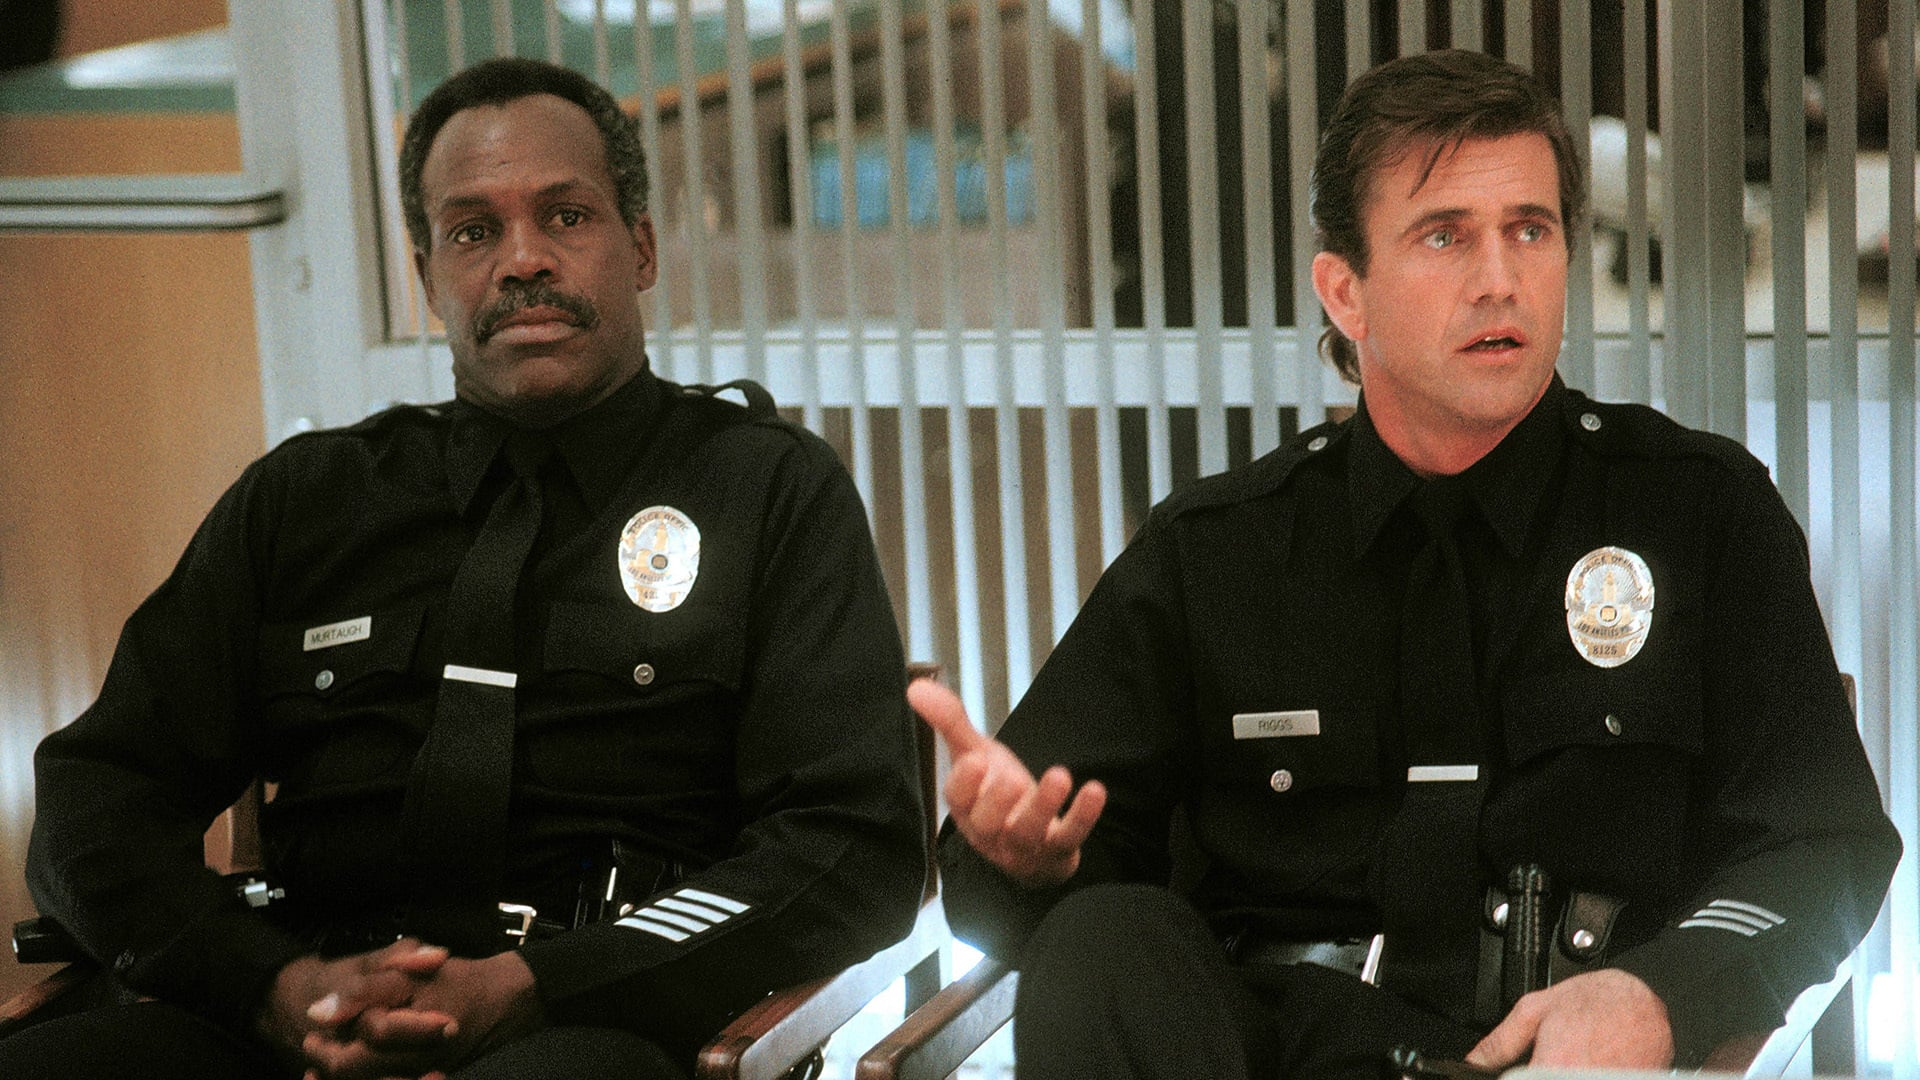 Riggs and Murtaugh in Lethal Weapon 3